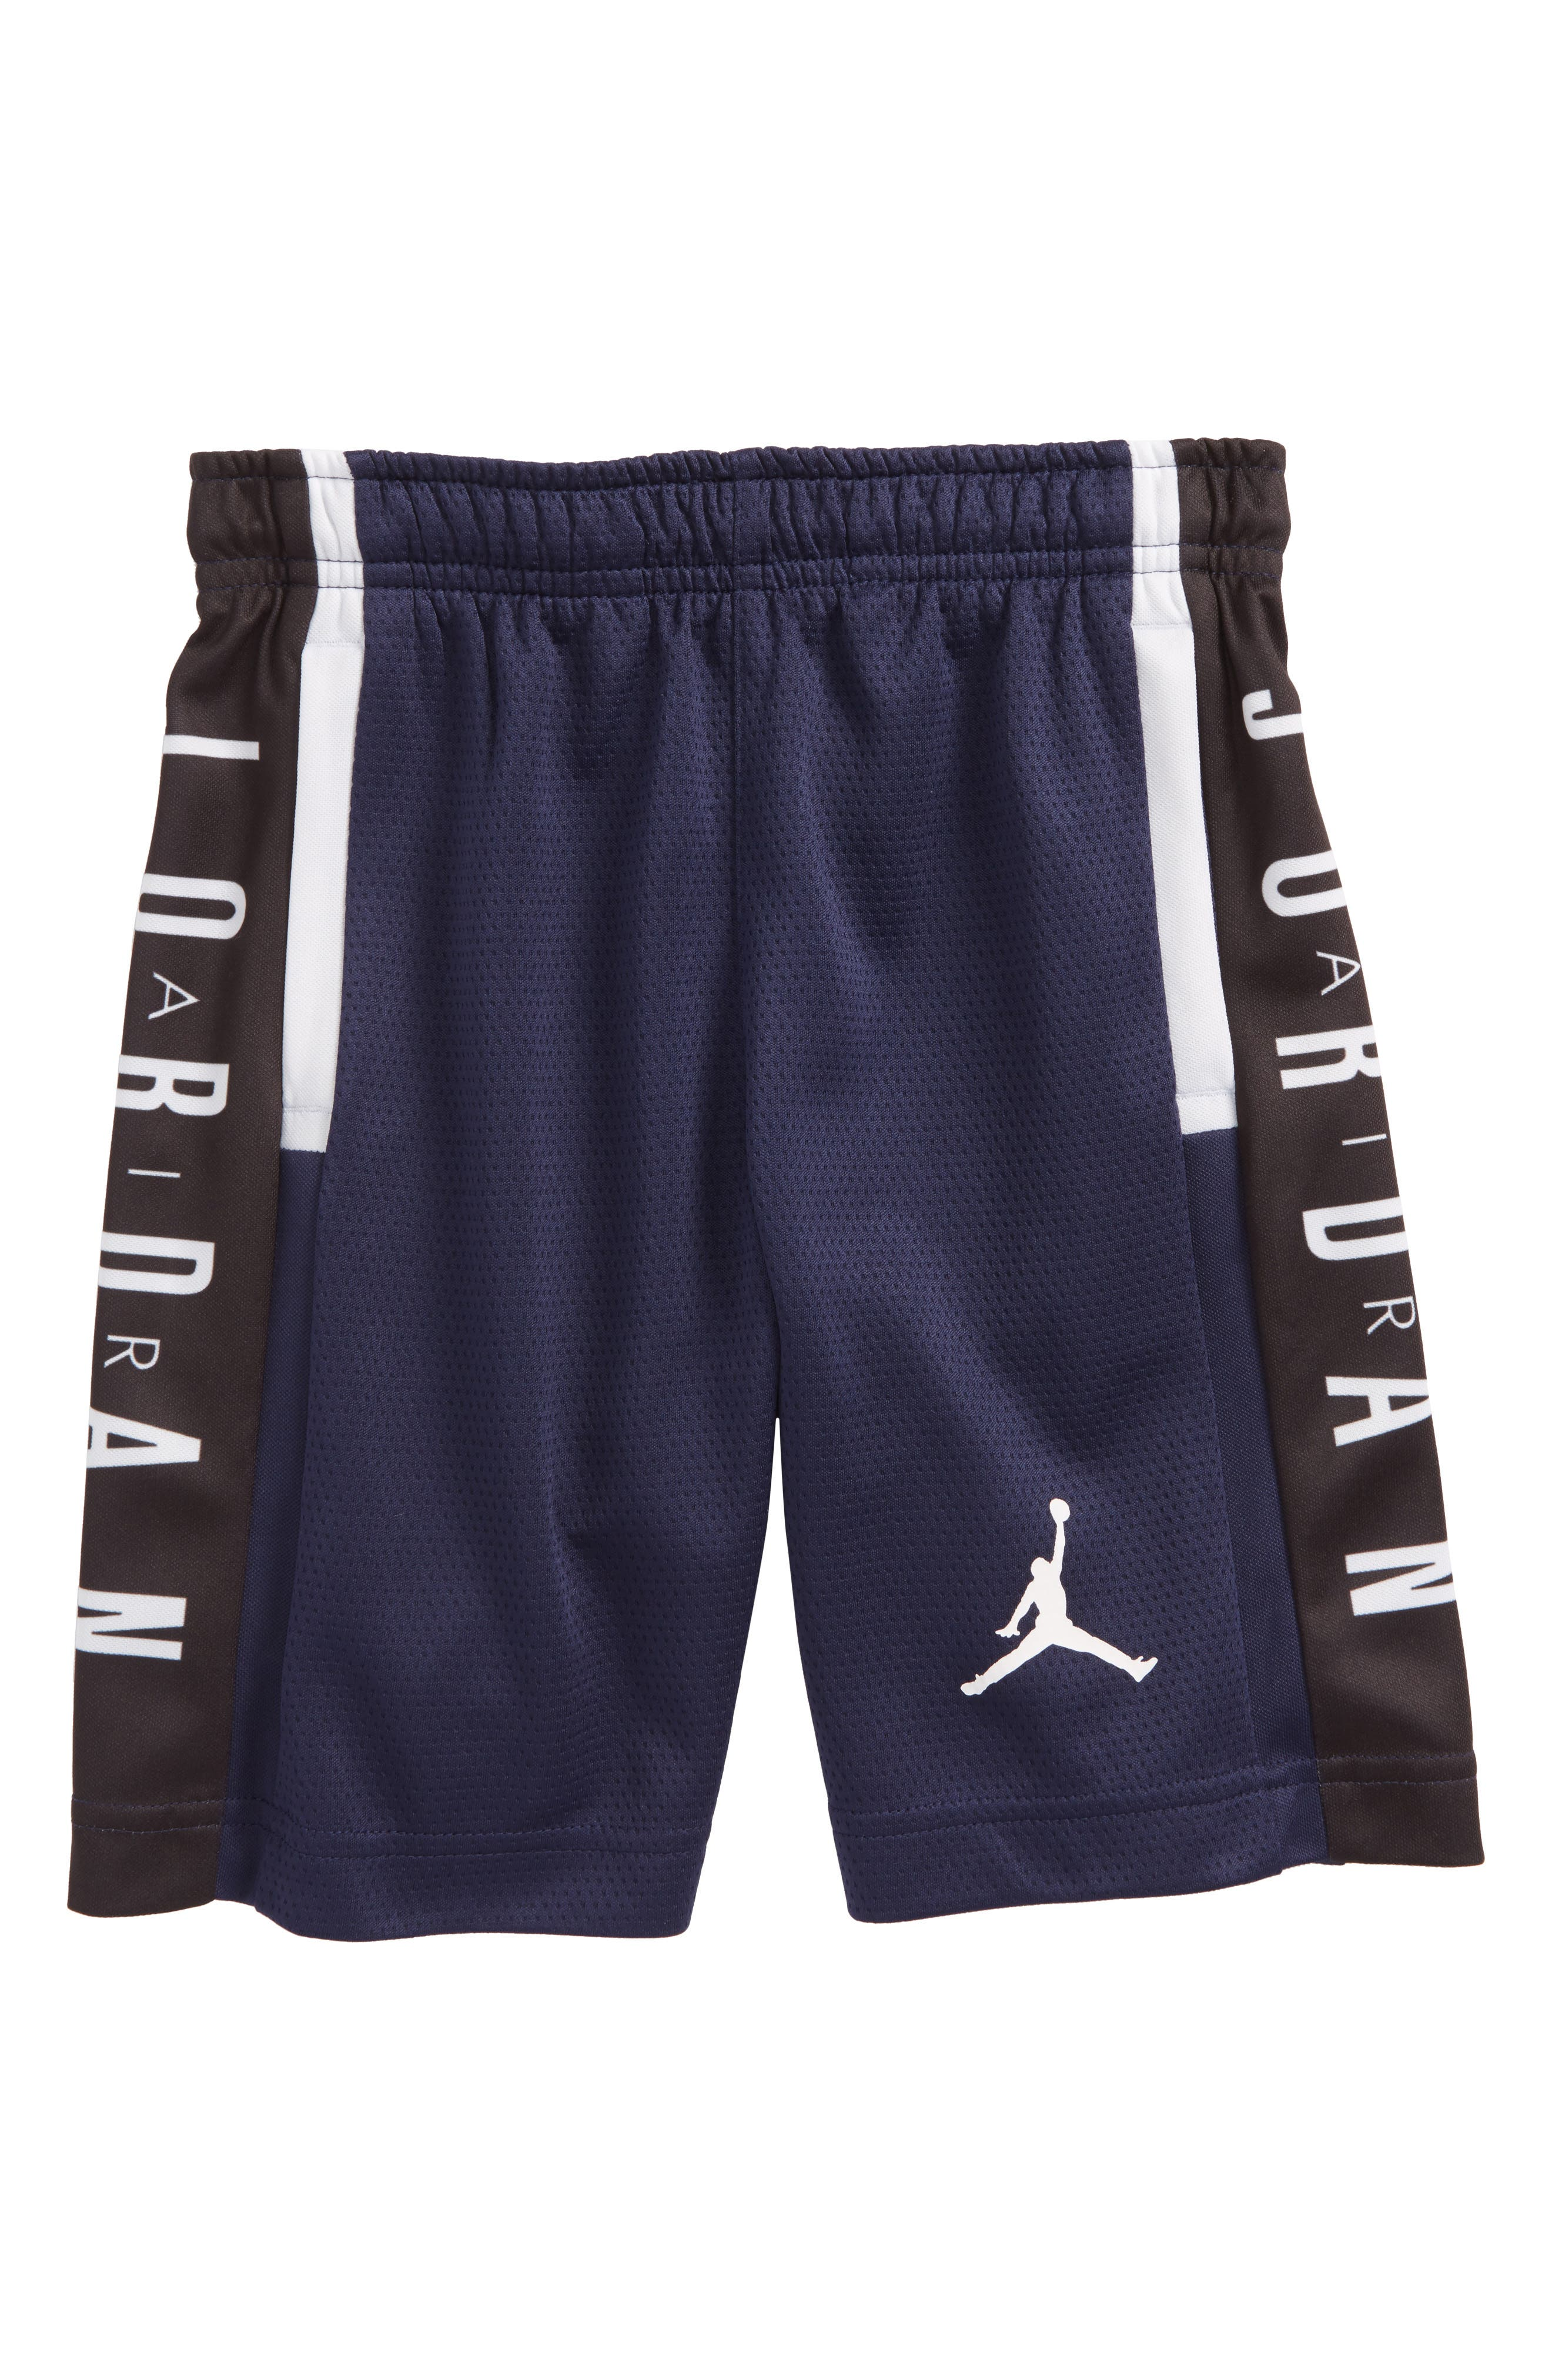 Rise Dri-FIT Graphic Shorts,                         Main,                         color, Midnight Navy